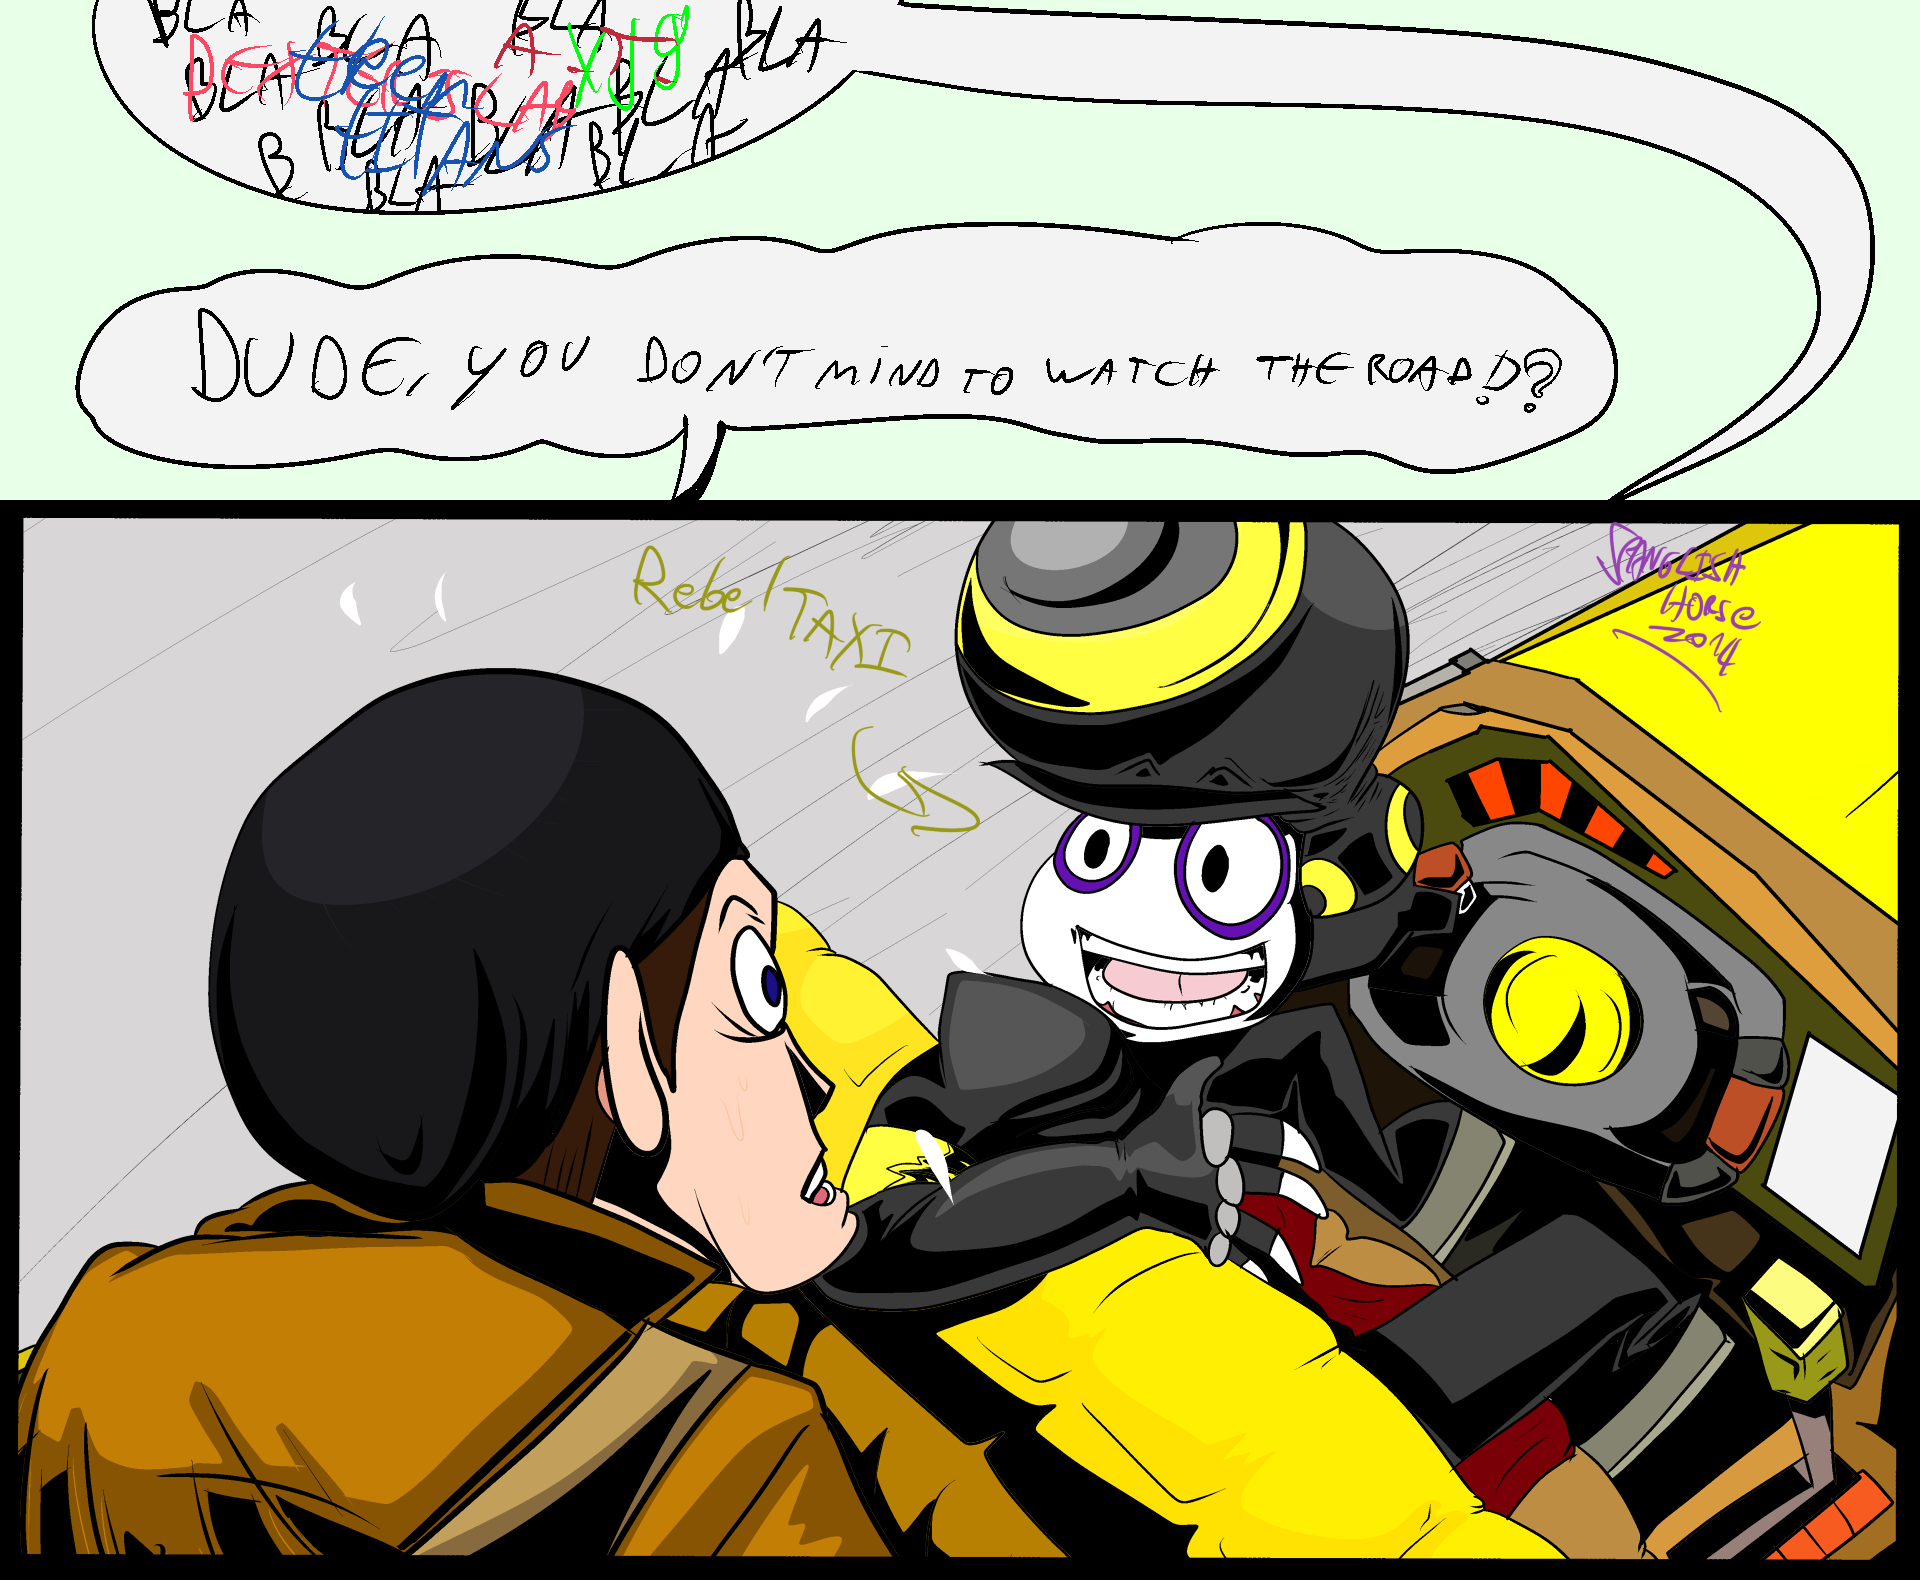 Rebeltaxi pan pizza in a cab 2